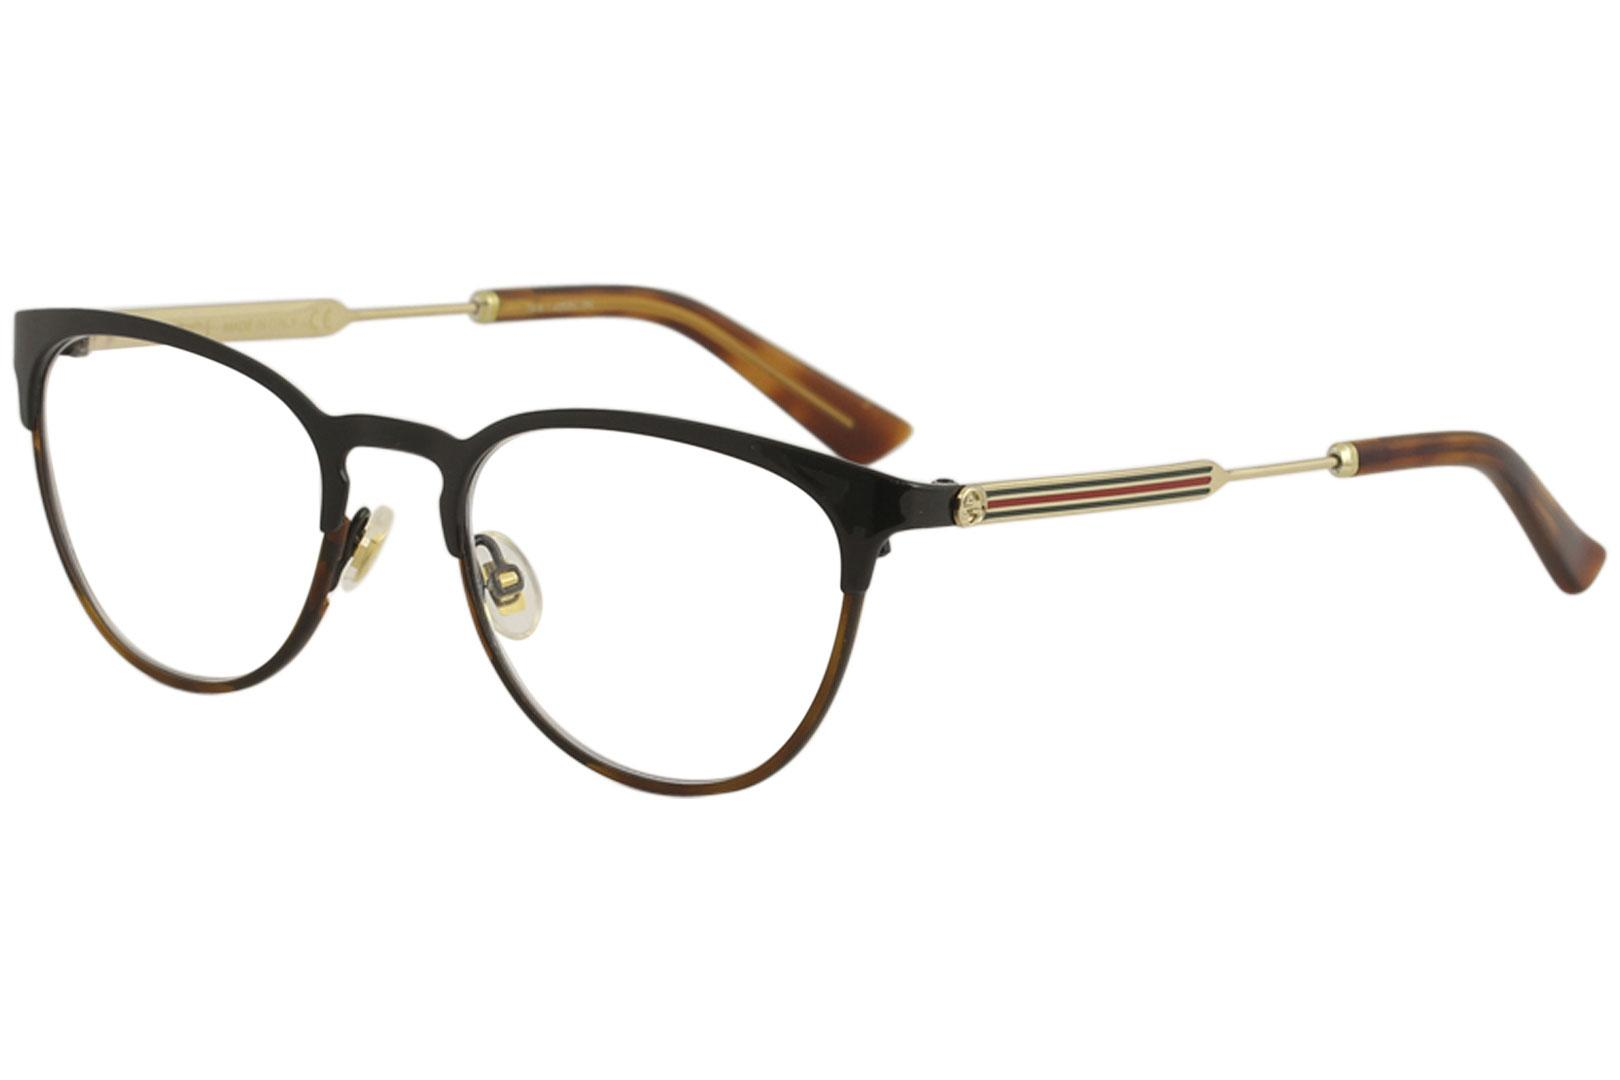 f5426ce5942 Gucci Women s Eyeglasses GG0134O GG 0134 O Full Rim Optical Frame